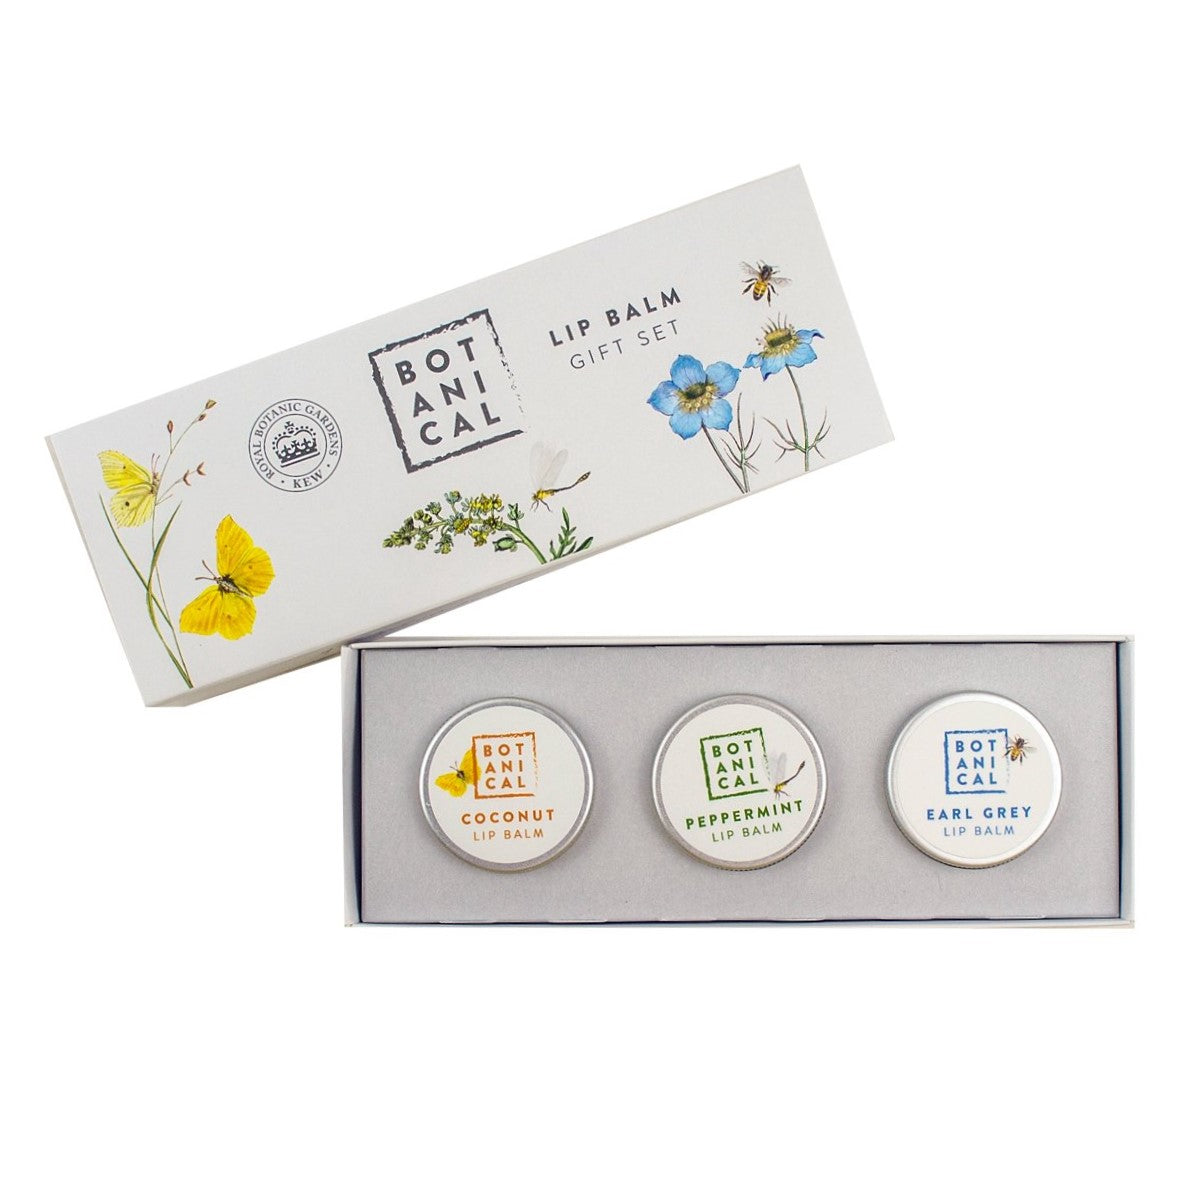 Botanical Lip Balm Gift Set